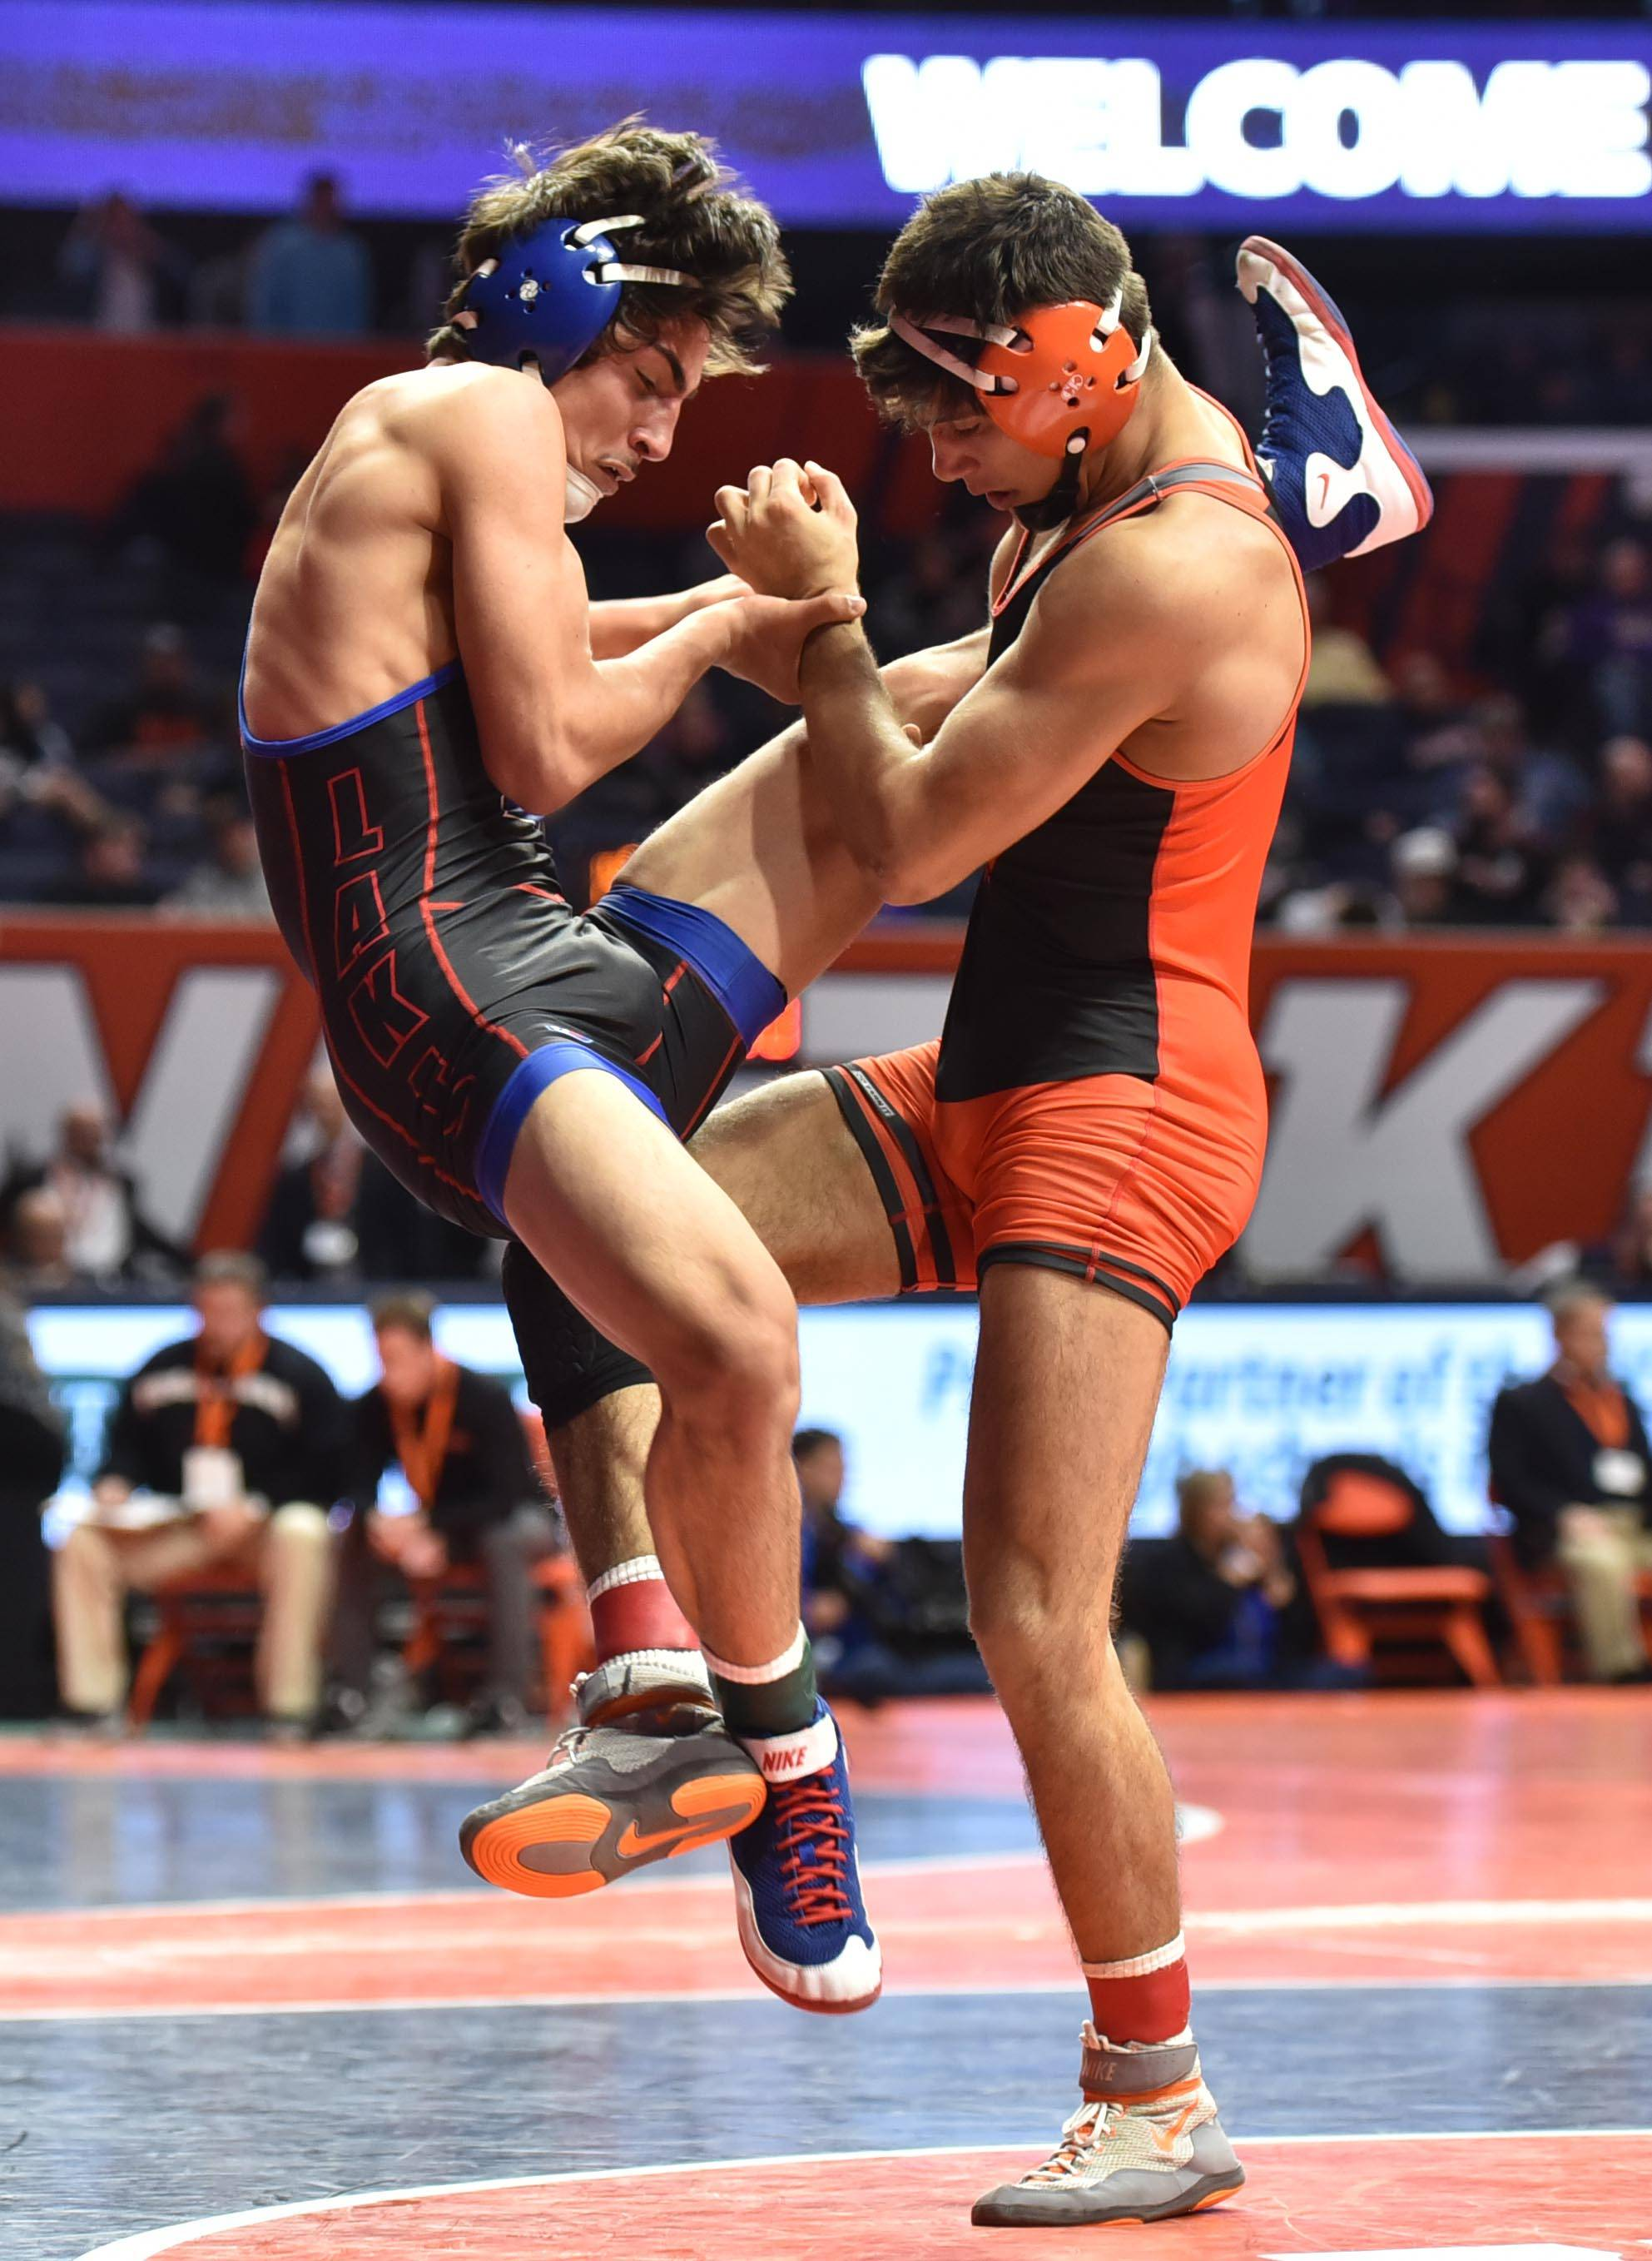 Lakes High School's Xavian Girona is tripped by Washington's Kyle Goin in the Calss 2A 152 pound quarterfinal bout Friday at the IHSA state wrestling tournament preliminaries.